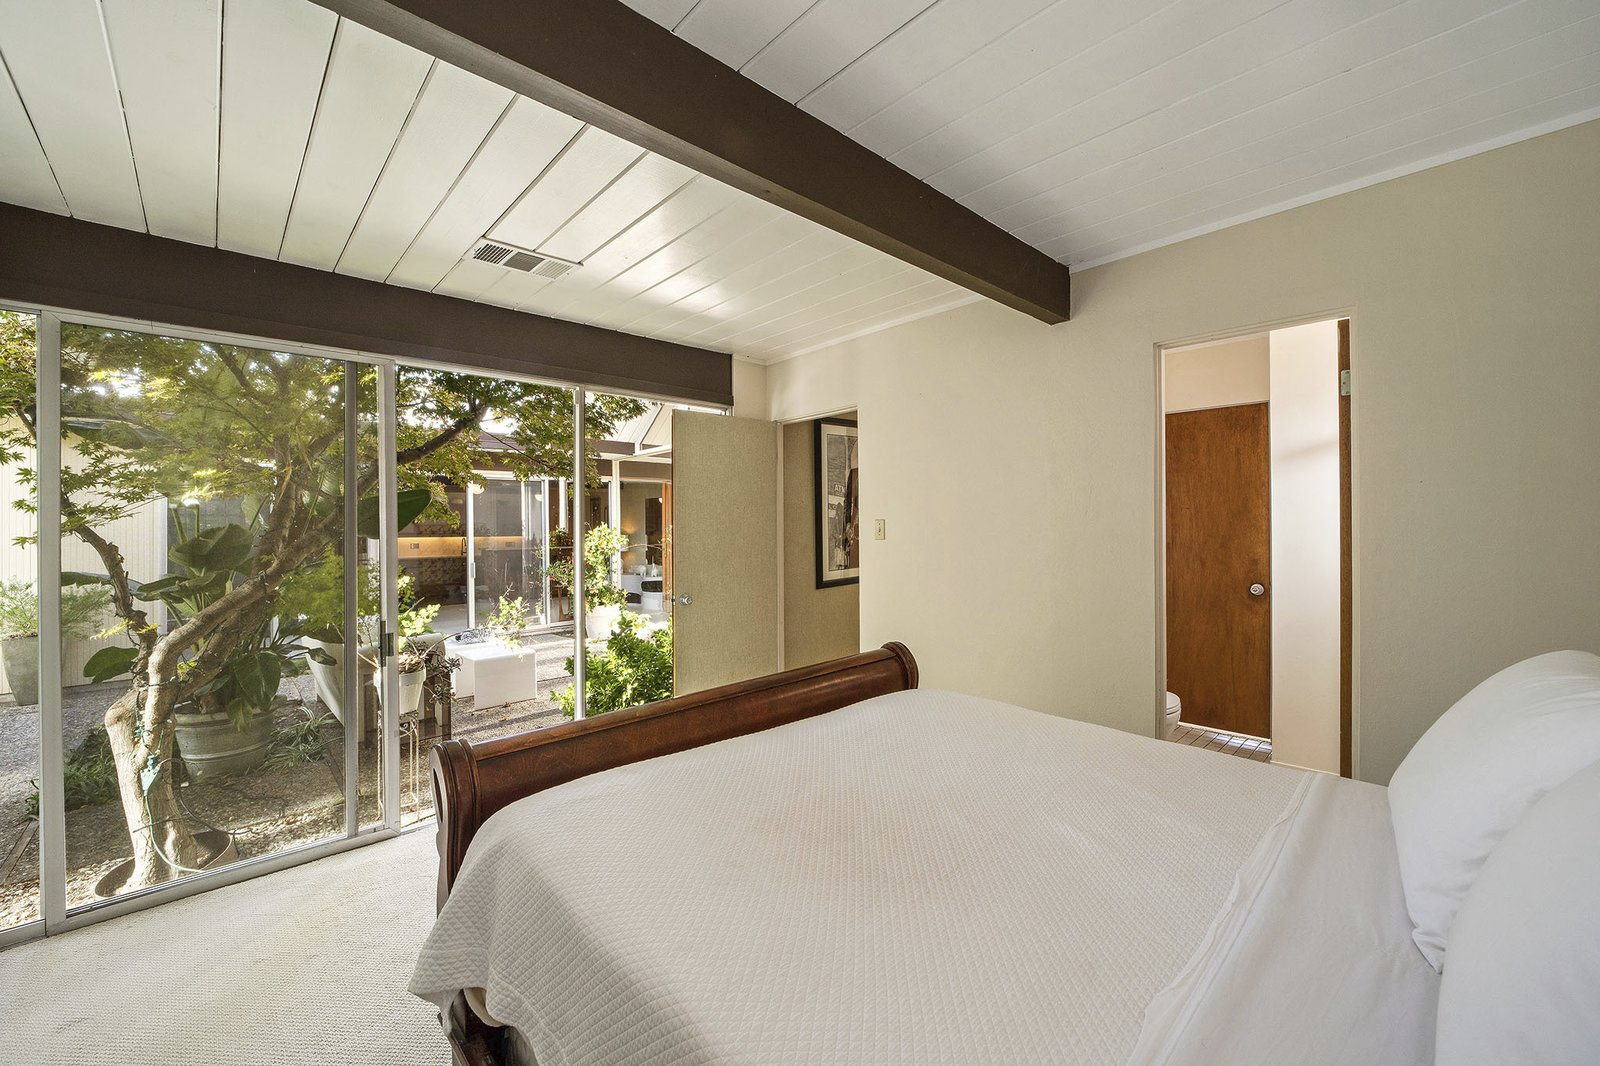 Bedroom, Carpet Floor, and Bed The master bedroom features an ensuite bathroom and opens via sliding doors to the atrium.  Photo 12 of 13 in A Double A-Frame Eichler in the Bay Area Asks $925K